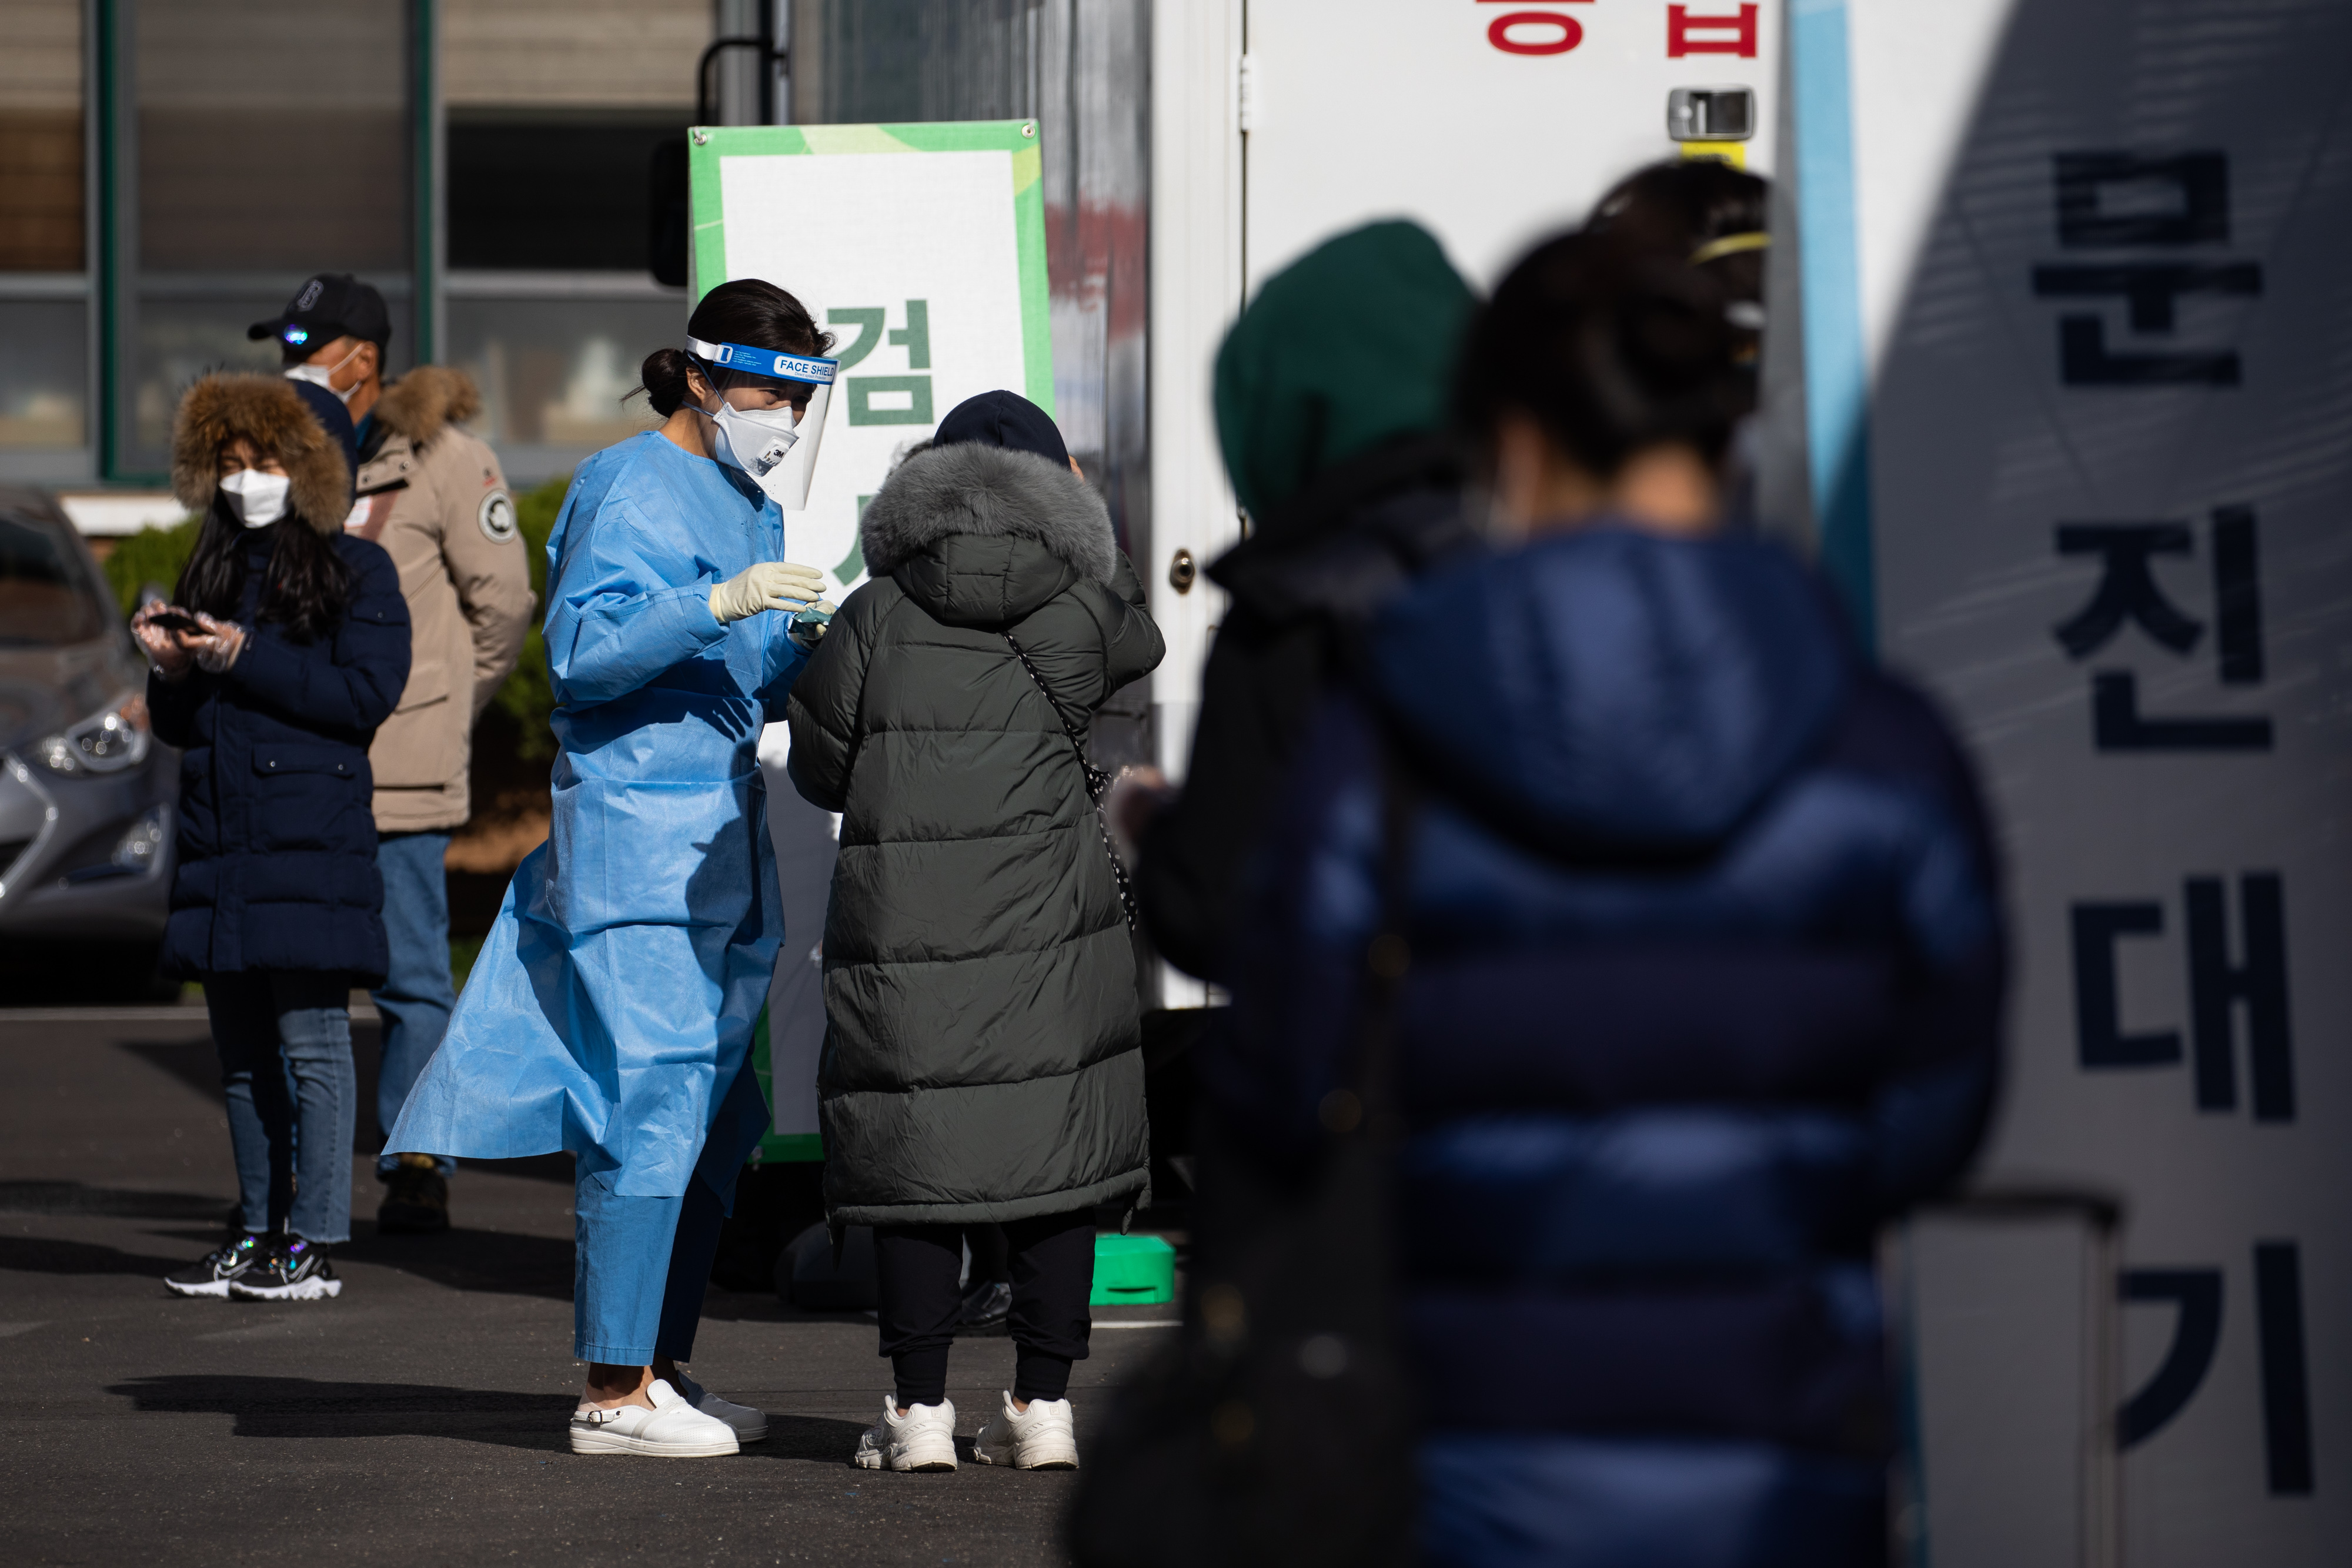 A medical worker talks to a person waiting in line at a Covid-19 testing station in Seoul, South Korea, on Saturday, November 28.